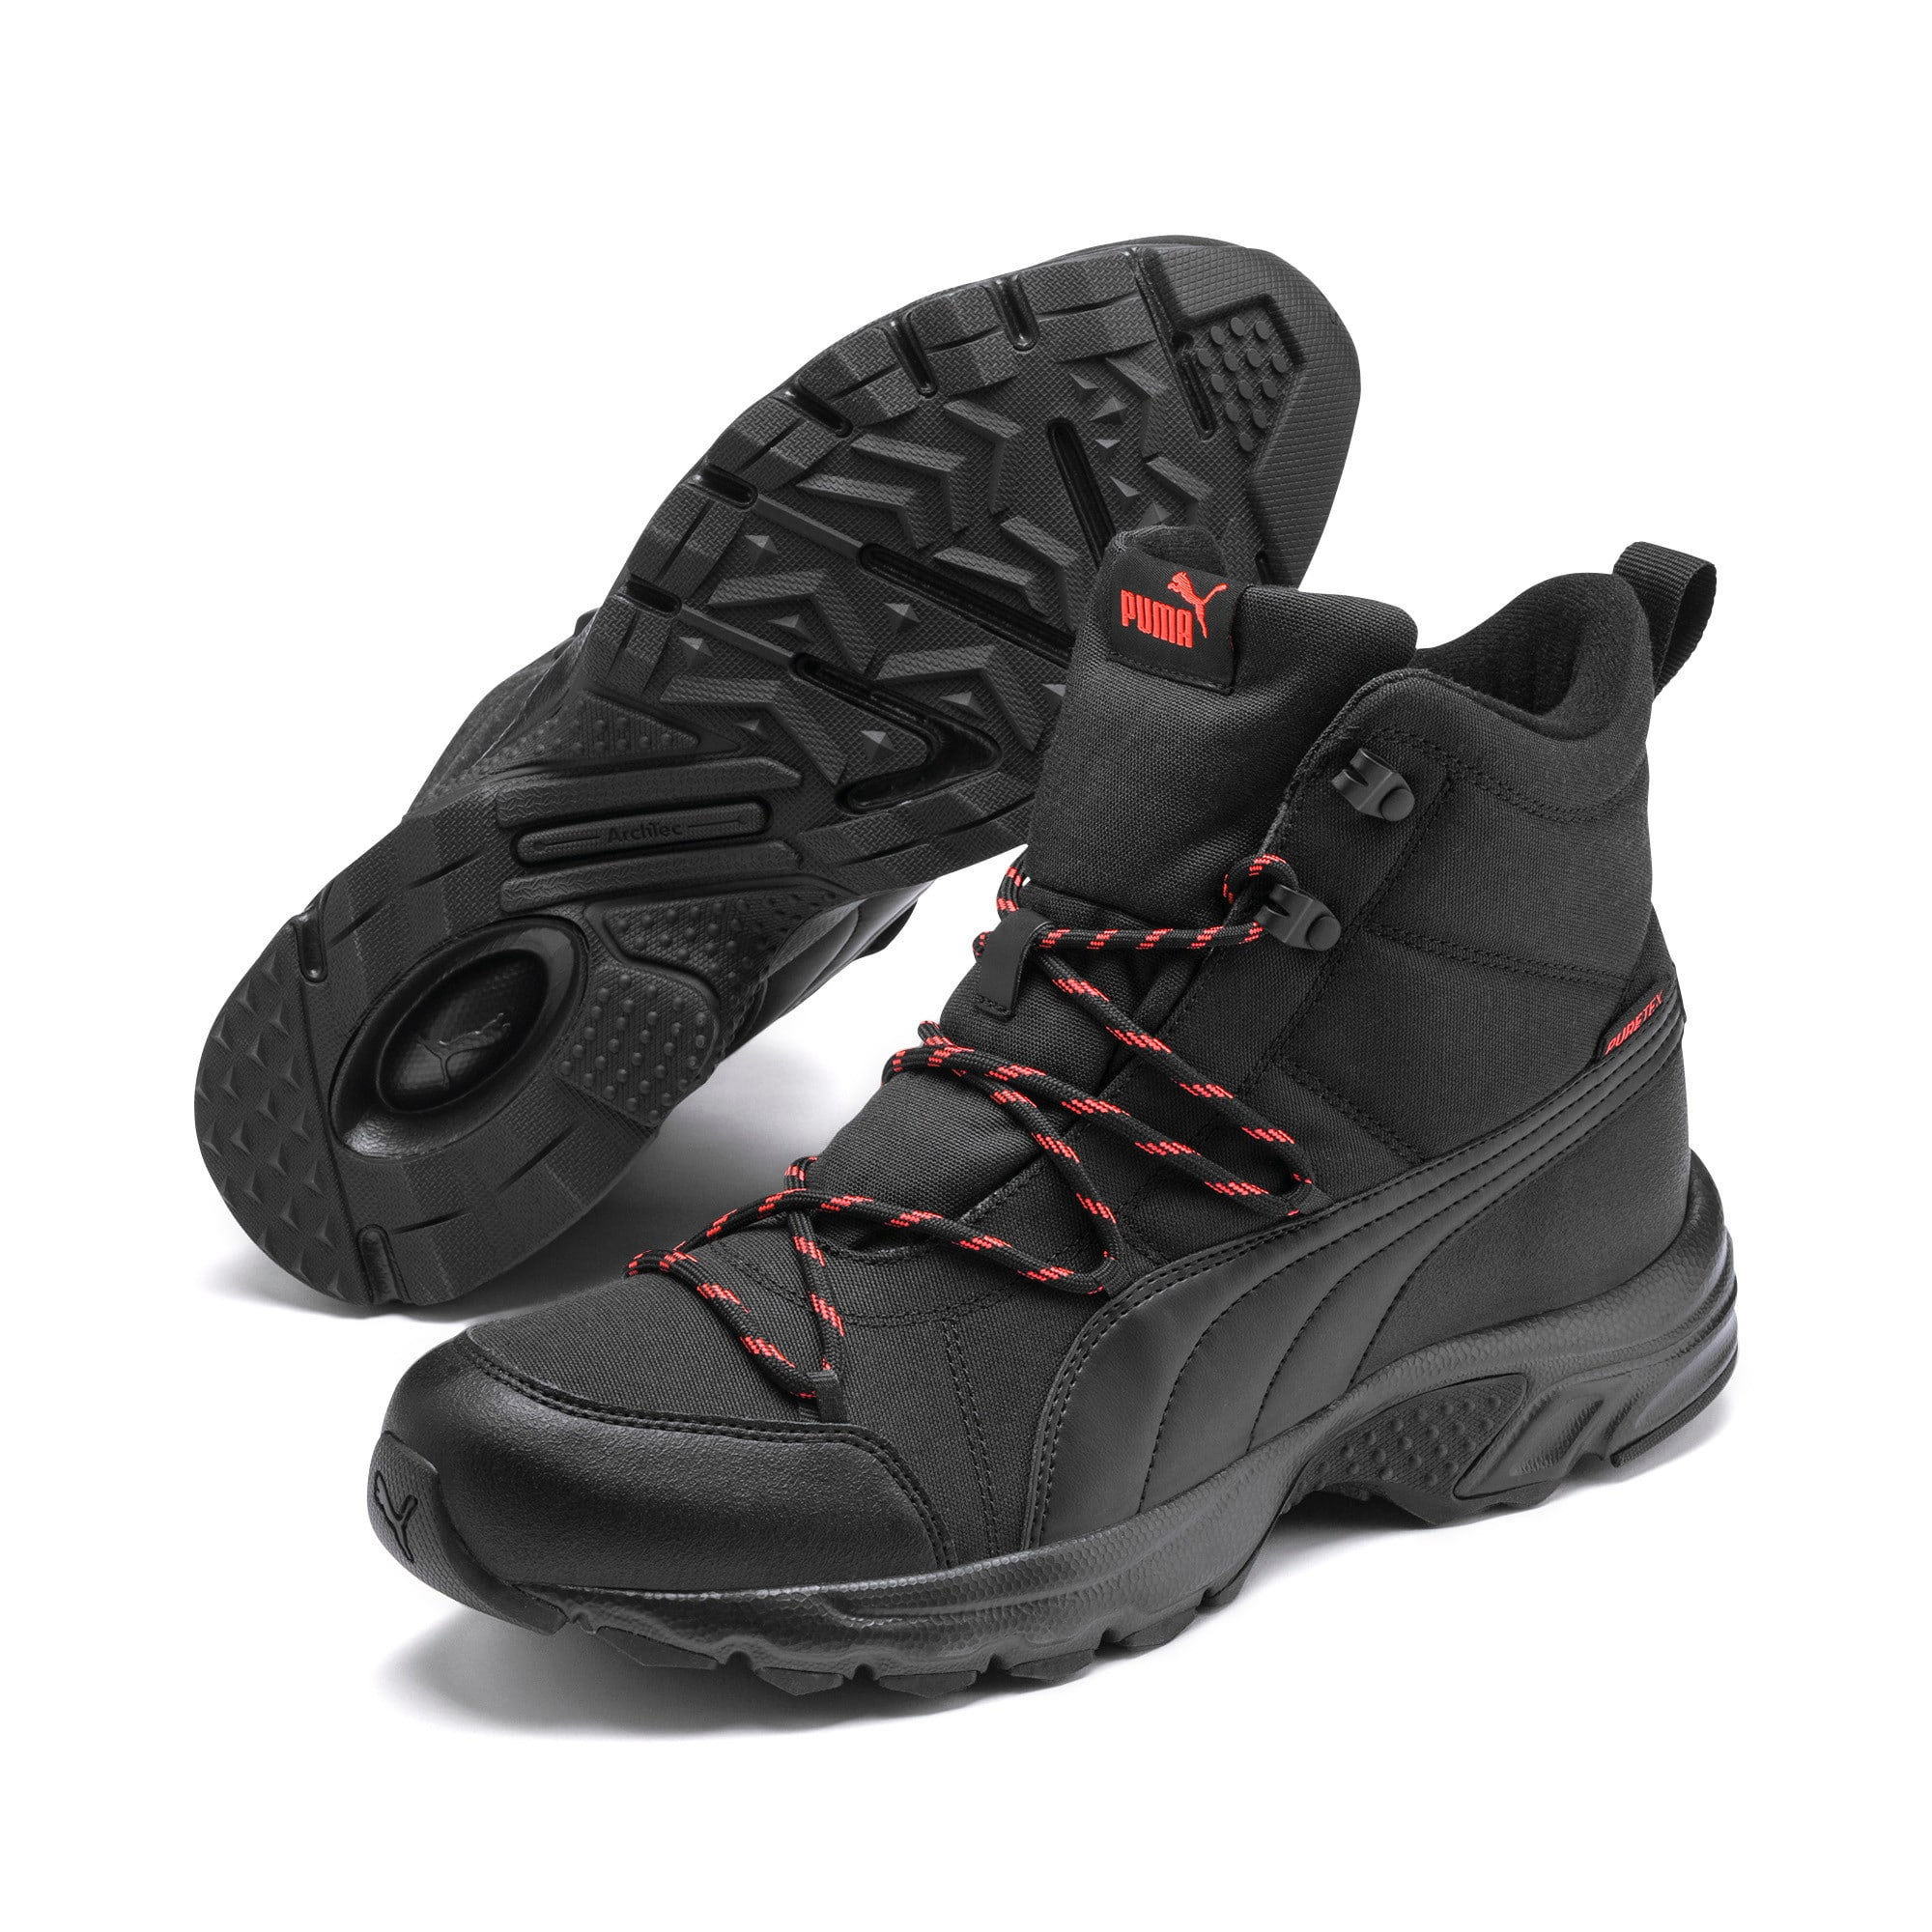 Thumbnail 7 of Axis Trail Winter Boots, Black-Nrgy Red-Whisper White, medium